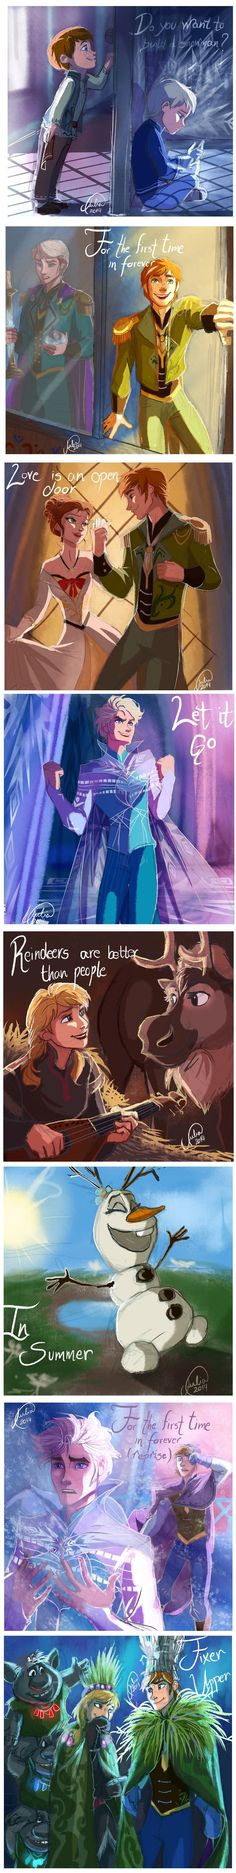 Frozen gender bend Disney